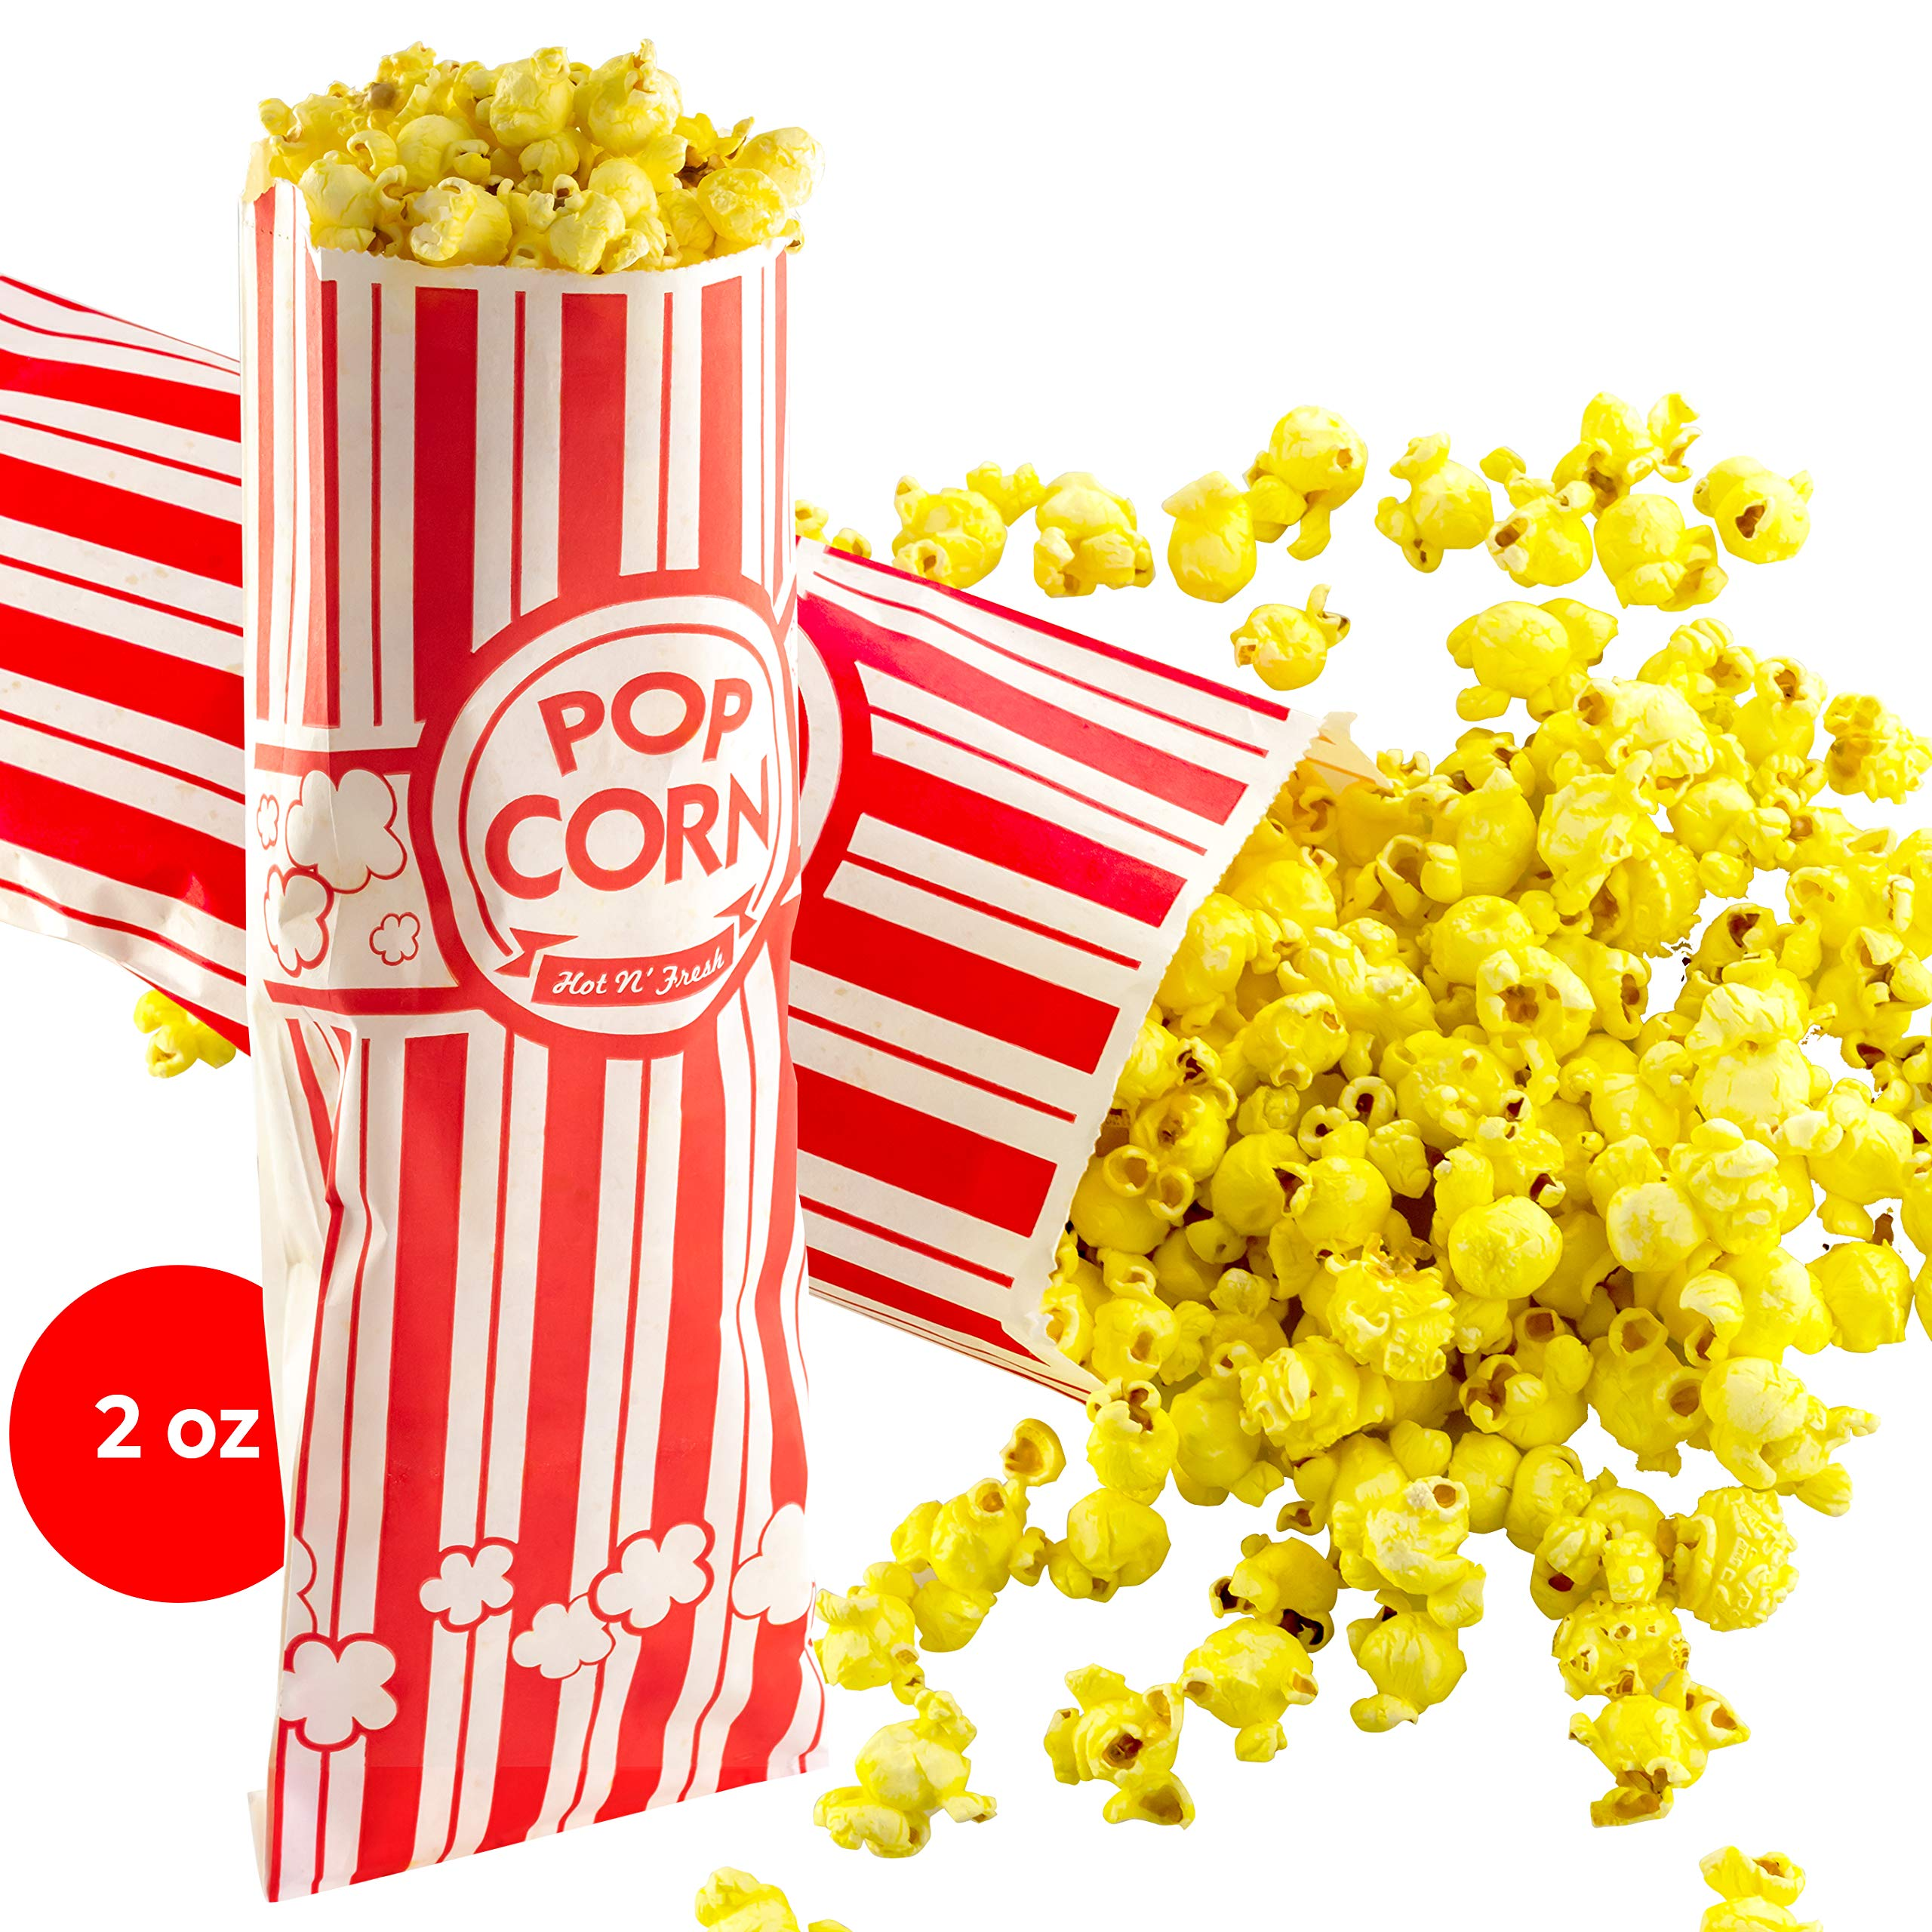 Popcorn Bags 1000 Pack. Coated for Leak/Tear Resistance. Single Serving 2oz Paper Sleeves in Nostalgic Red/White Design. Great Movie Theme Party Supplies or Old Fashioned Carnivals & Fundraisers! by Avant Grub